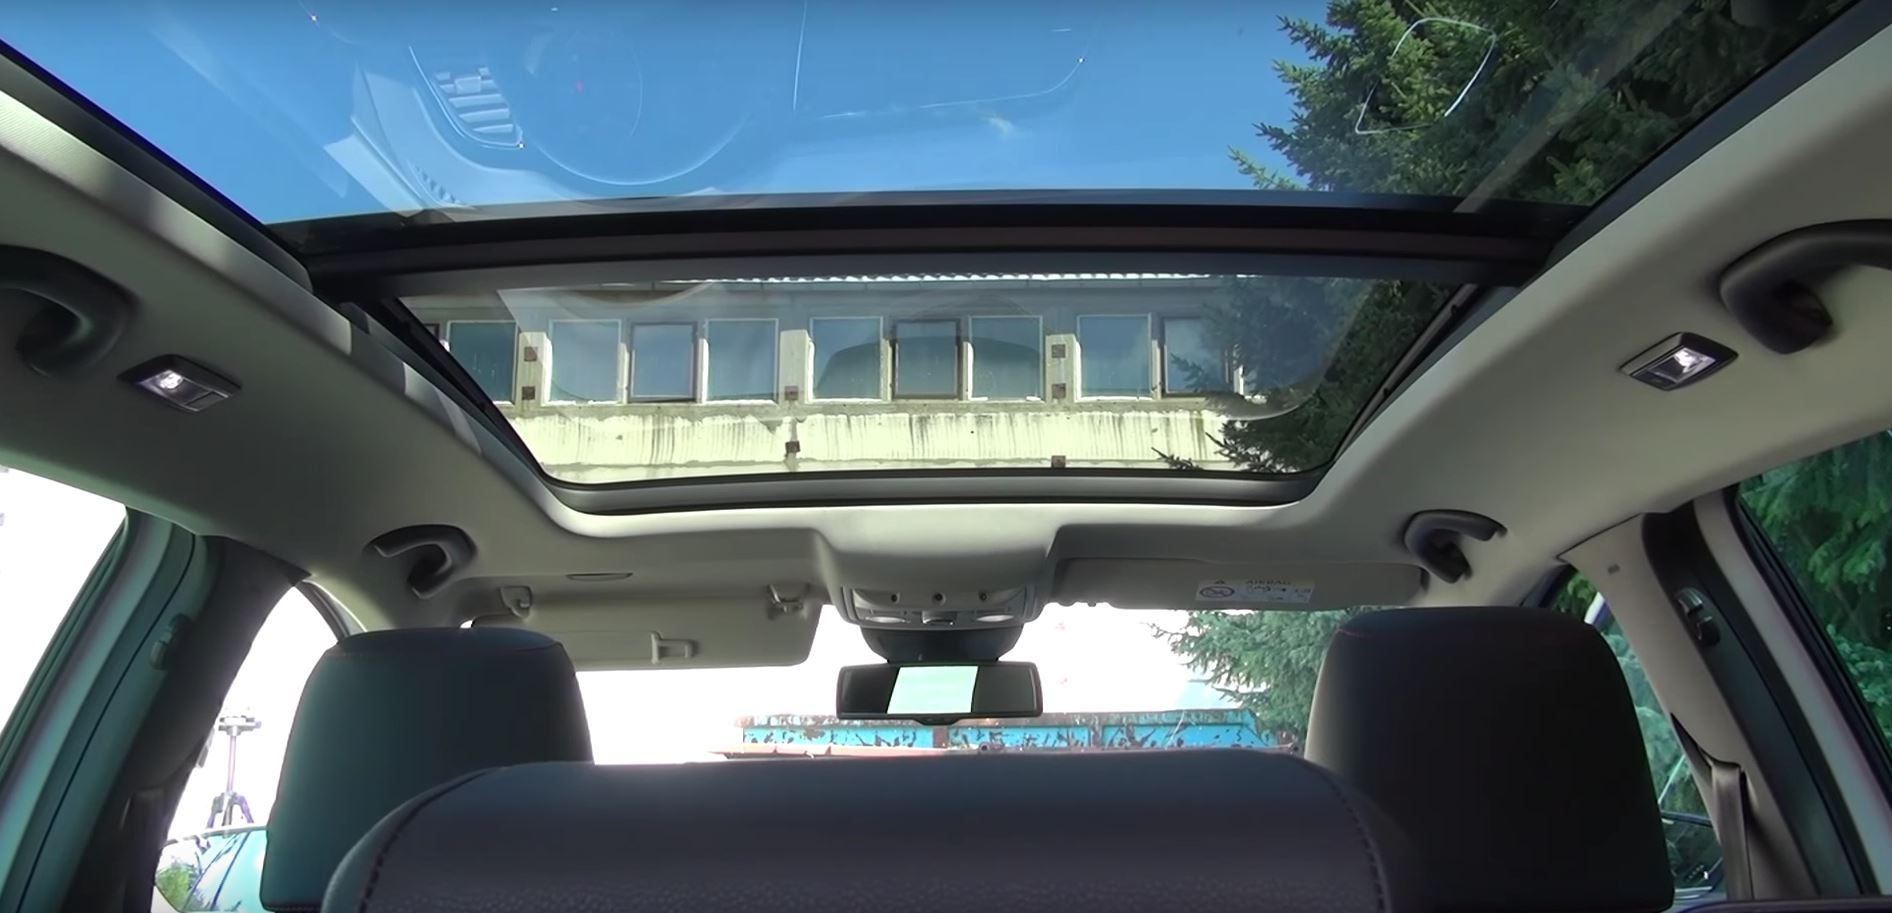 Panoramic Roof Cars >> A Look At The Seat Leon St Panoramic Roof Option Autoevolution